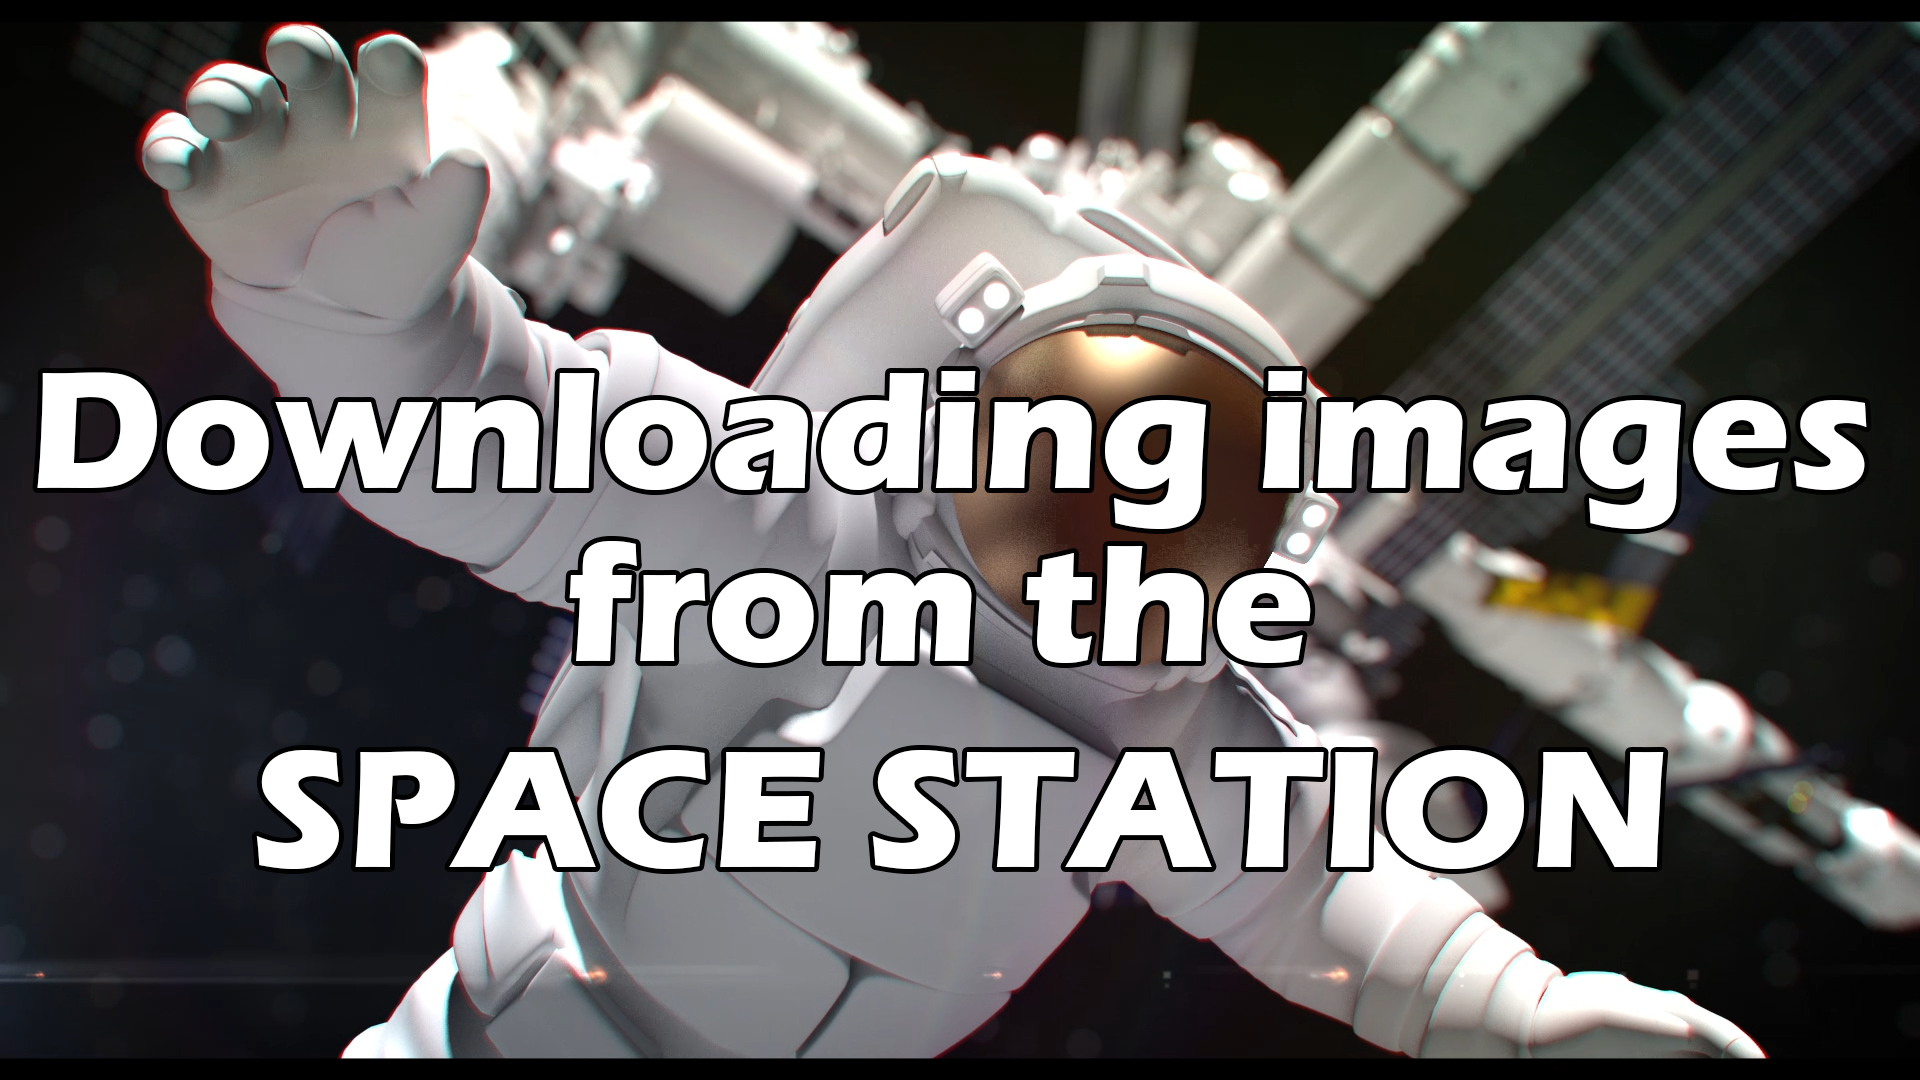 Downloading images from the SPACE STATION with a 22$ USB radio